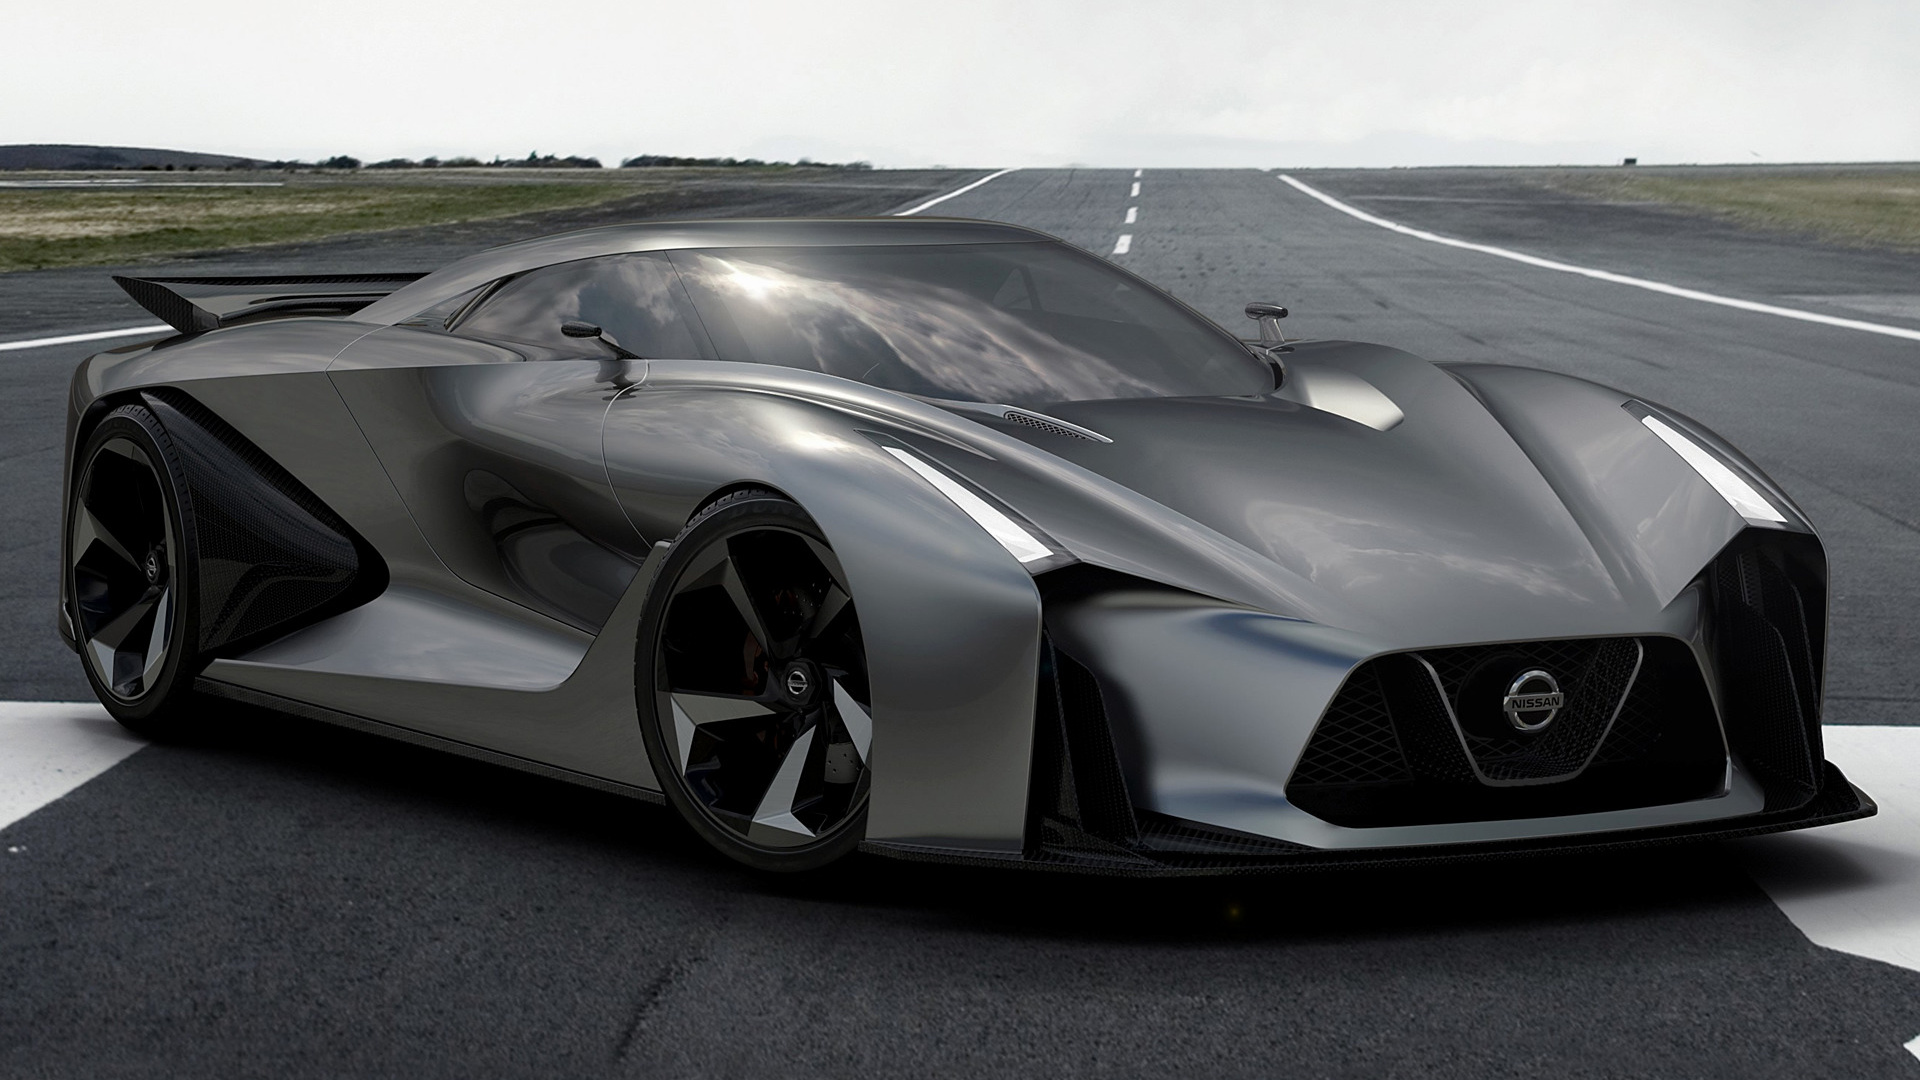 Nissan Concept 2020 Vision Gran Turismo (2014) Wallpapers ...